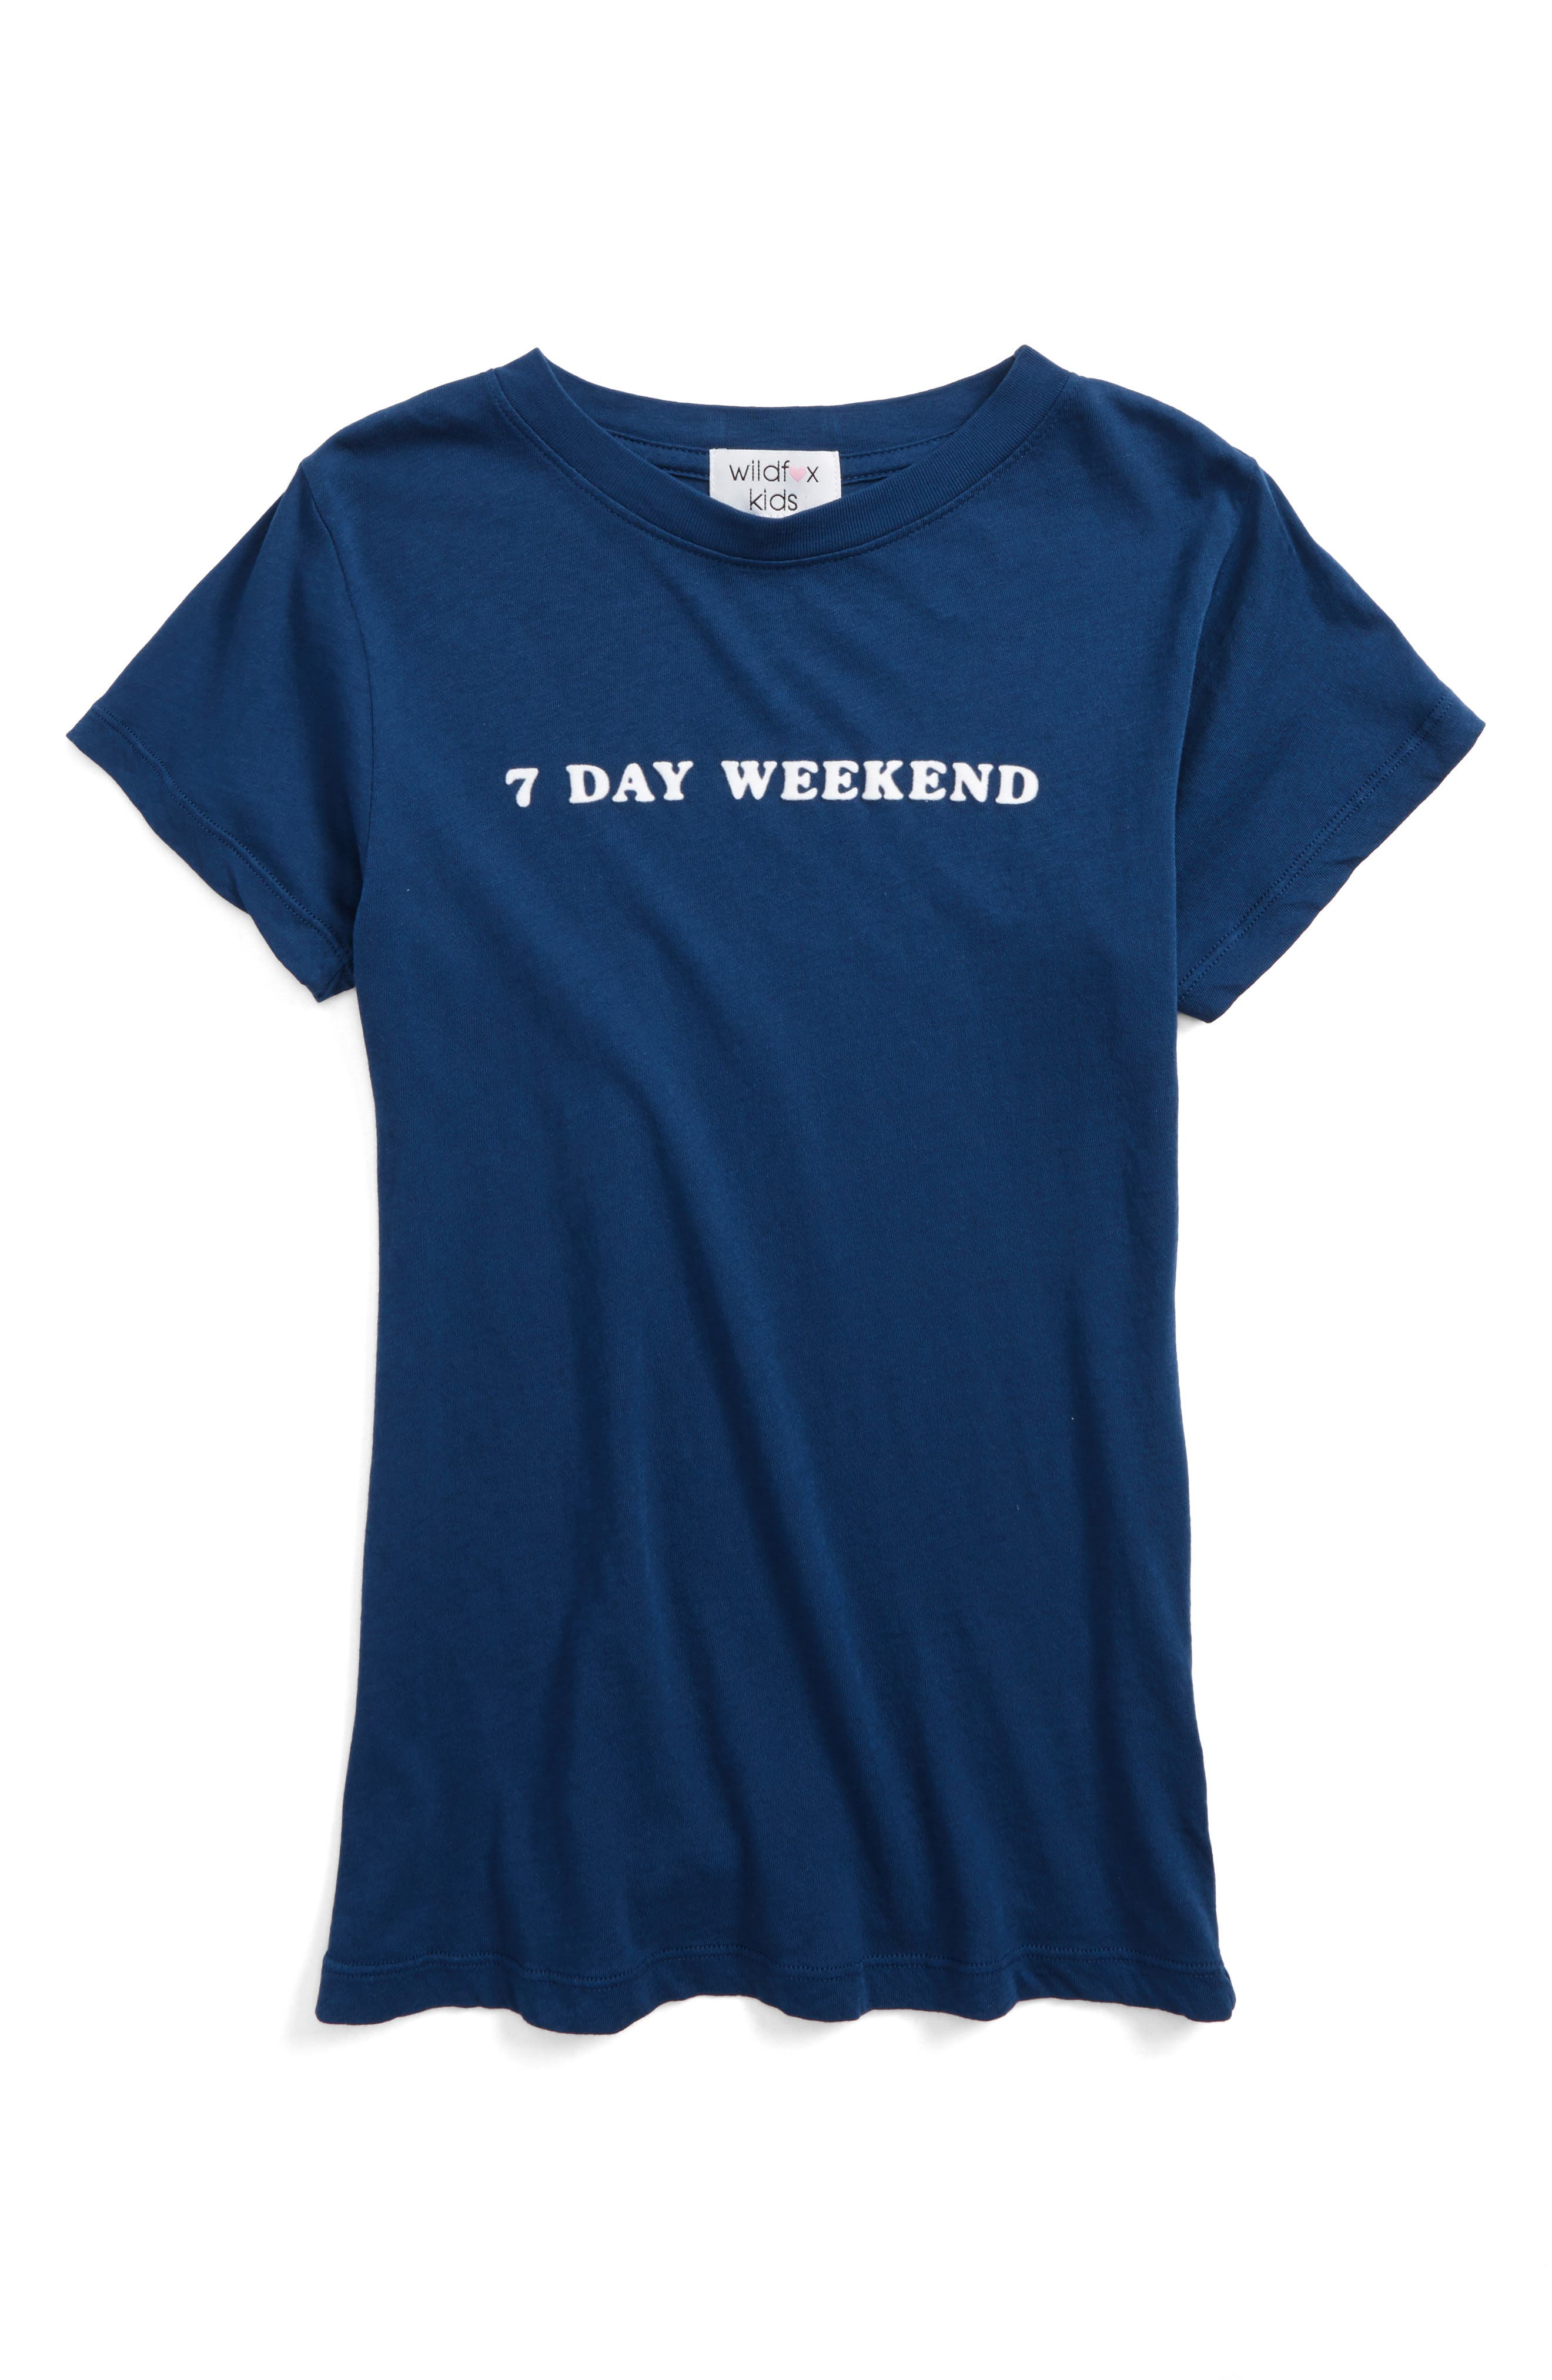 Wildfox 7 Day Weekend Tee (Big Girls)